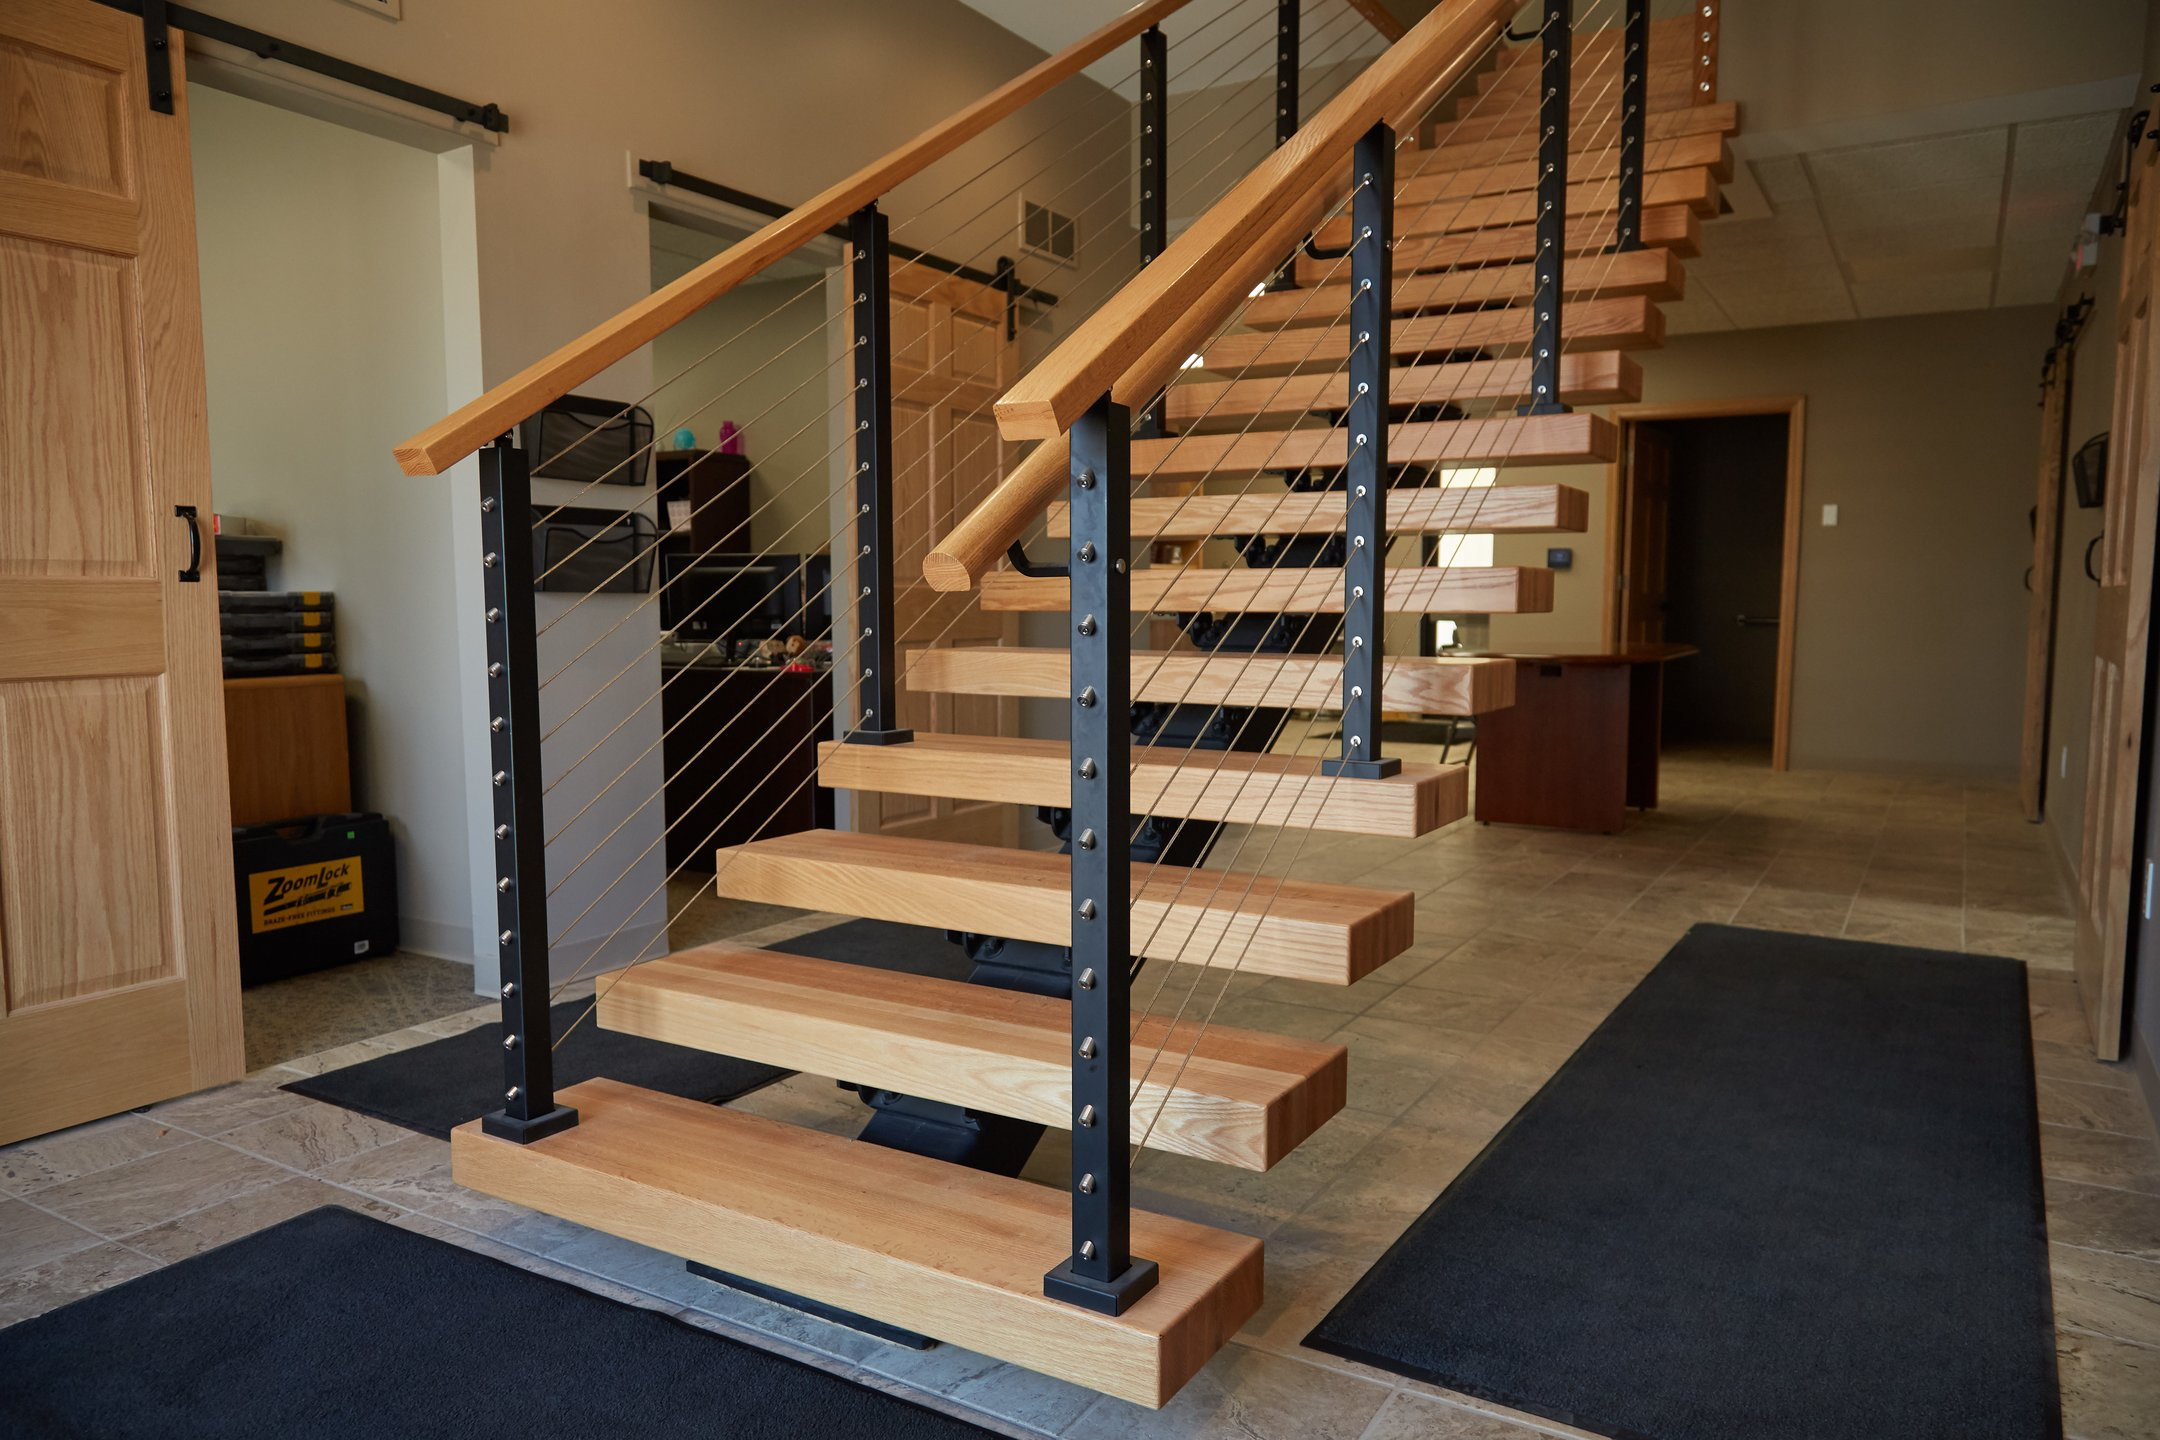 Floating Stairs With Clear Coated Treads And Graspable Handrail